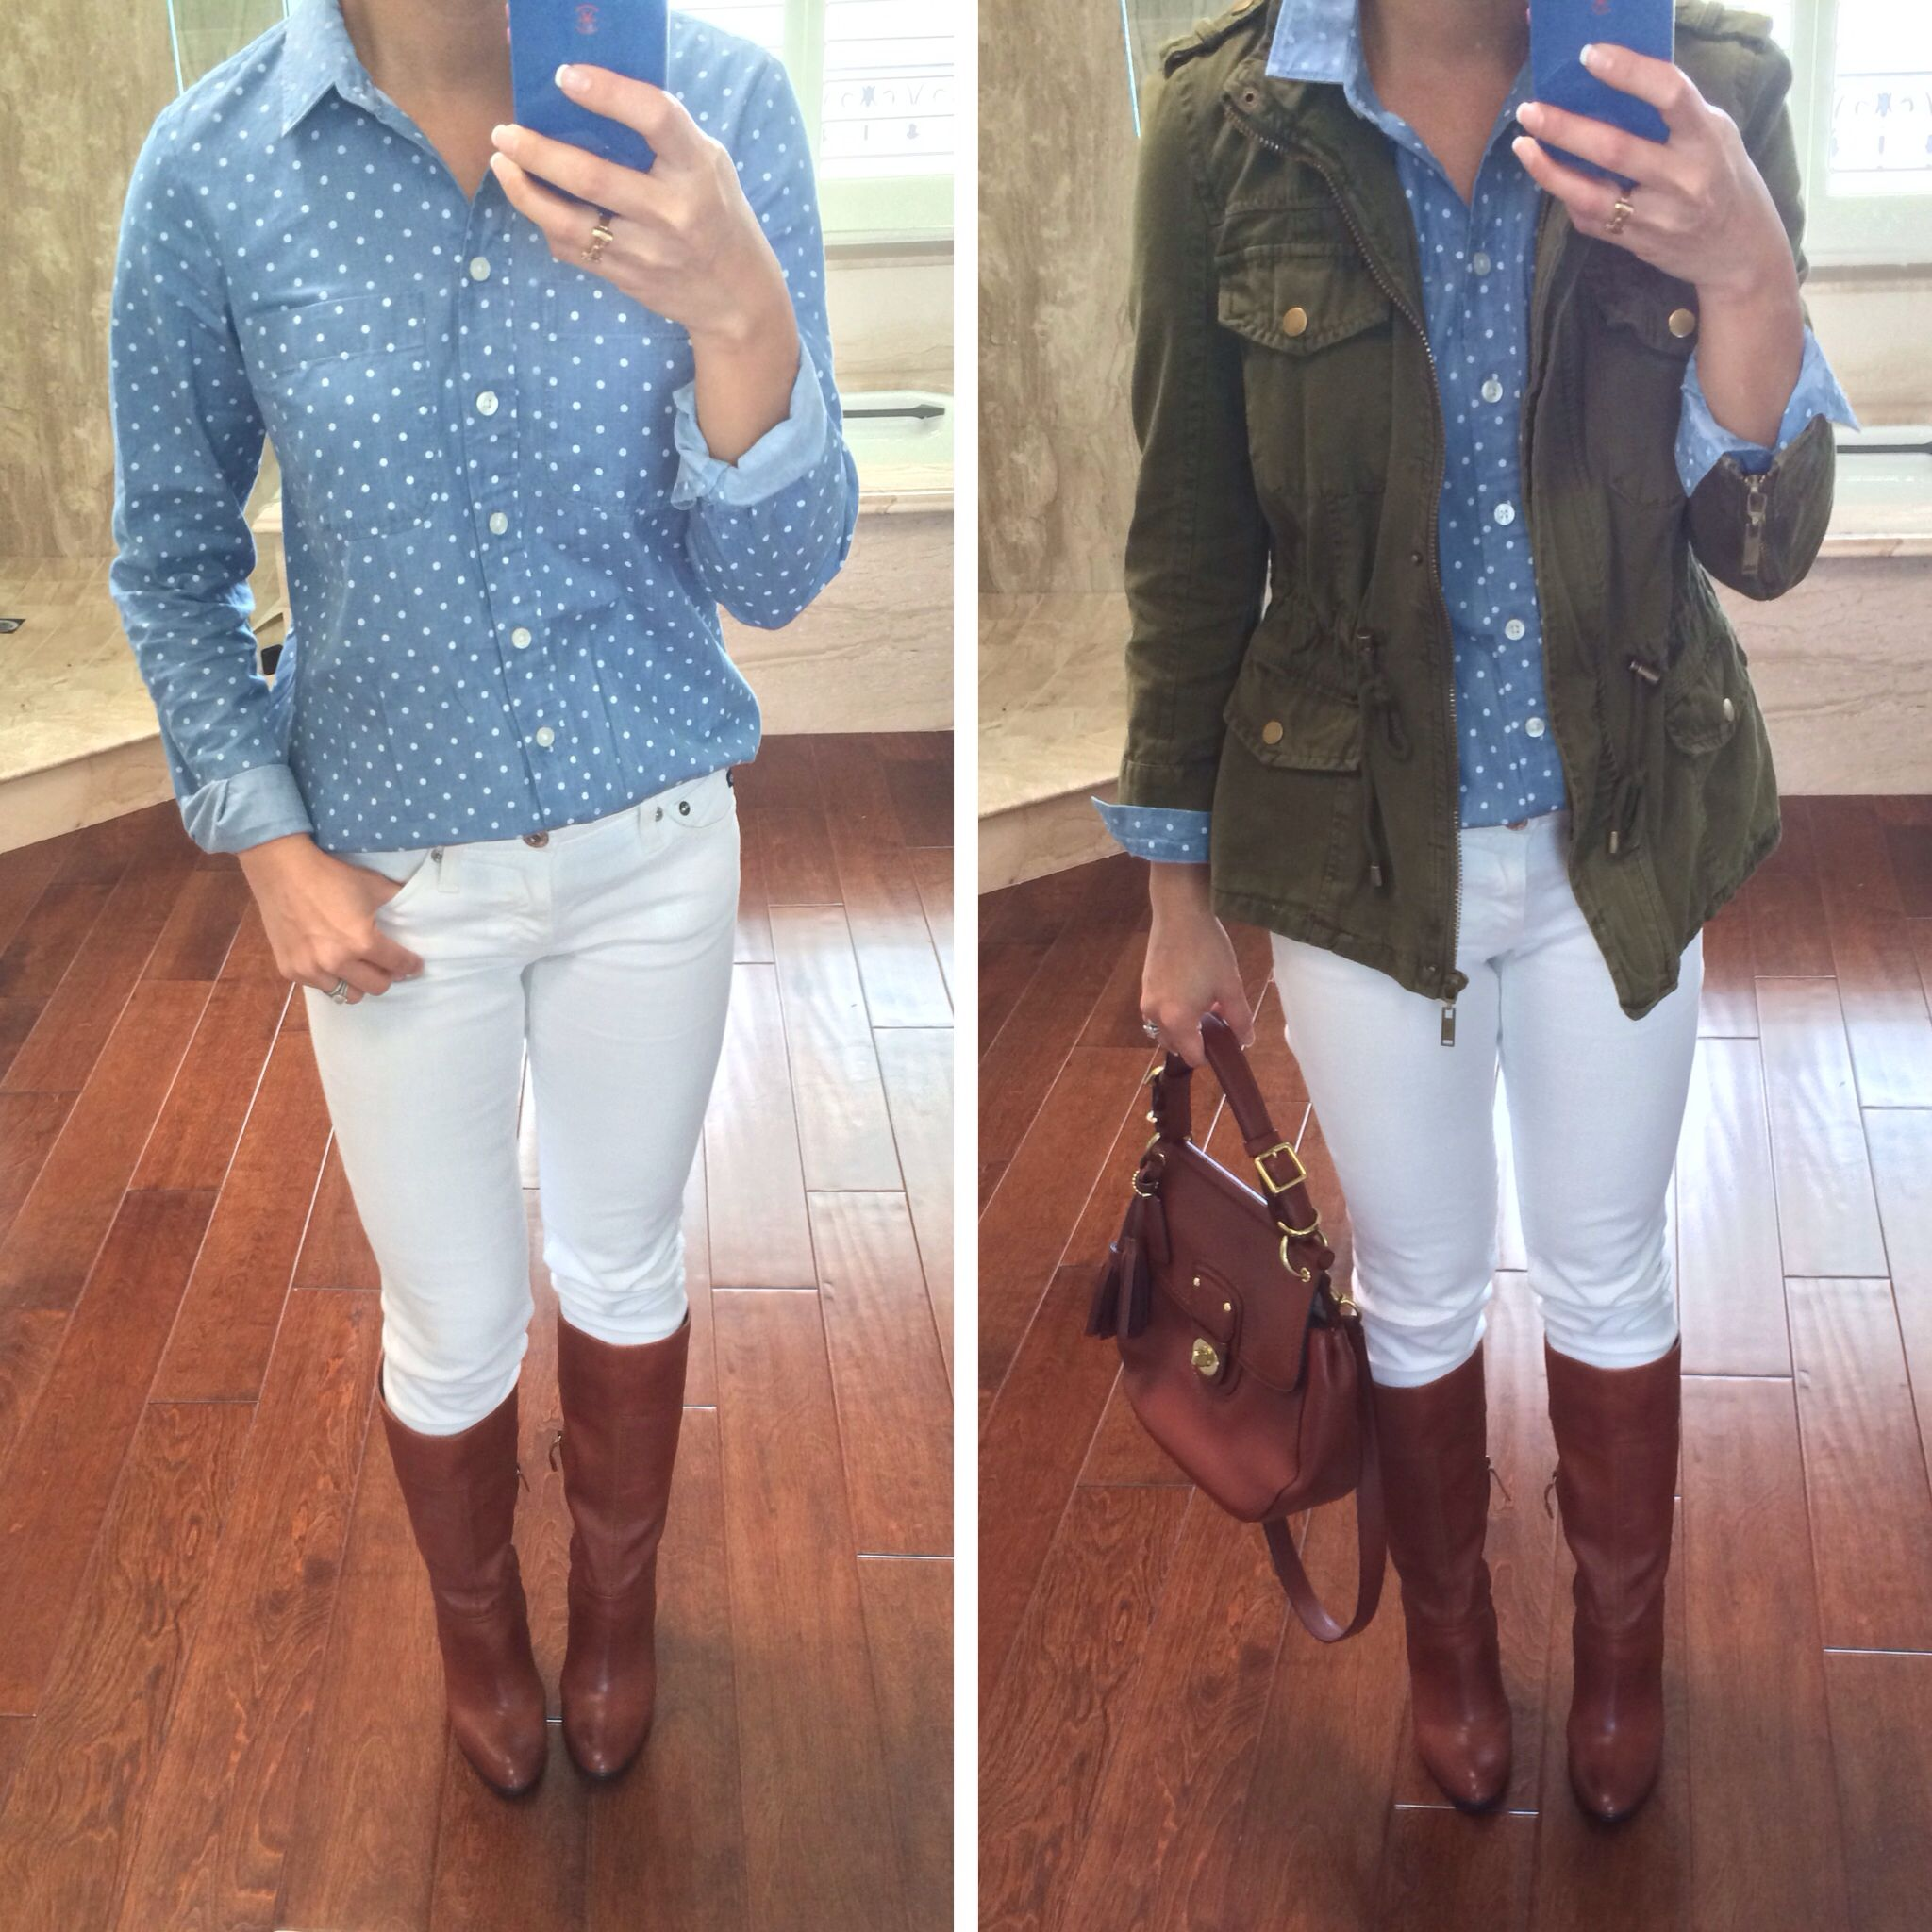 Causal weekend outfit: Loft polka dot chambray shirt, Forever 21 ...